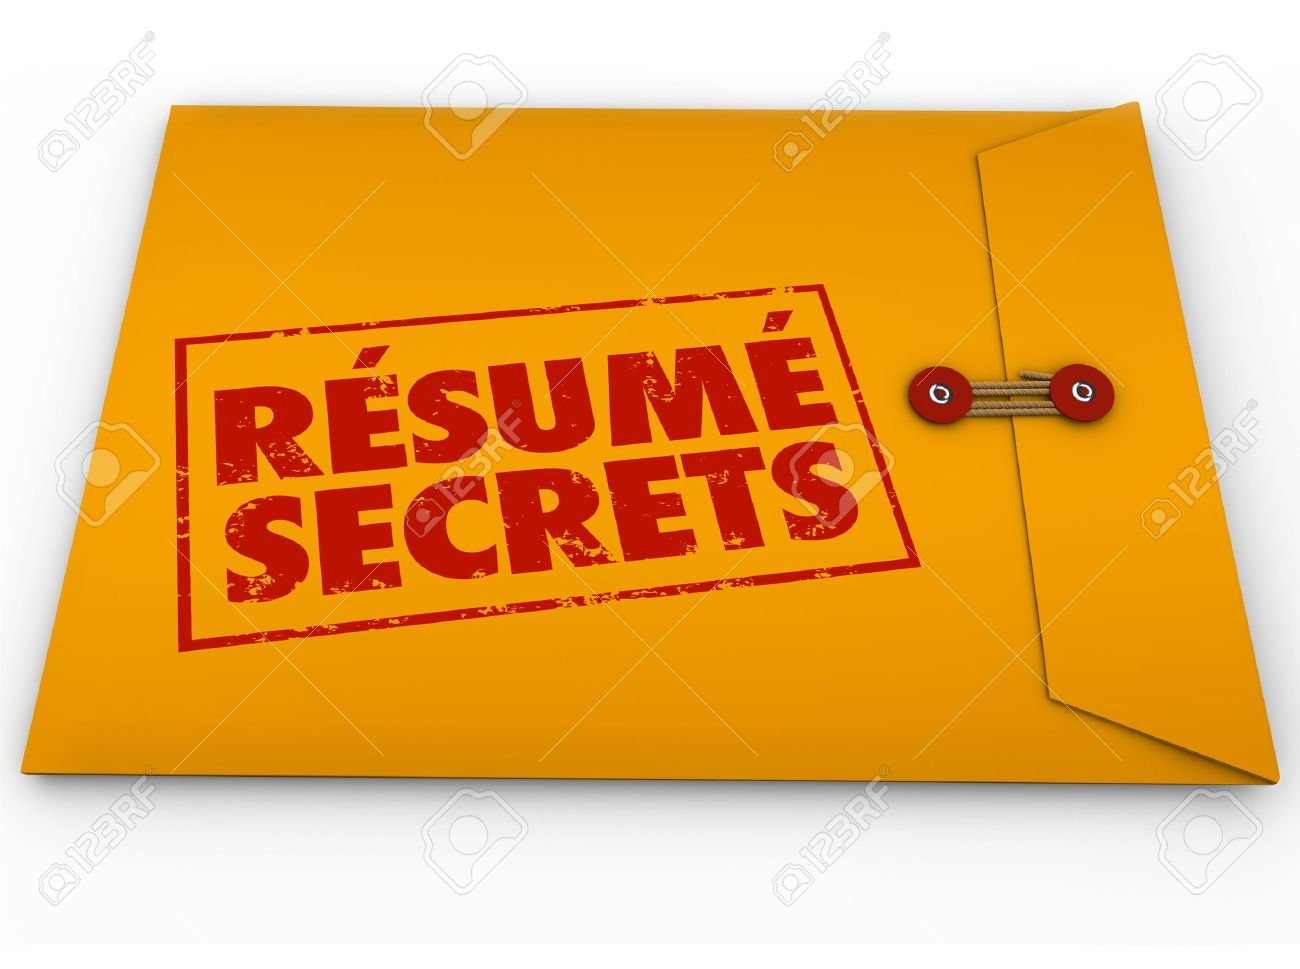 resume secrets words stamped on yellow envelope to illustrate resume secrets words stamped on yellow envelope to illustrate tips guidance advice and instructions